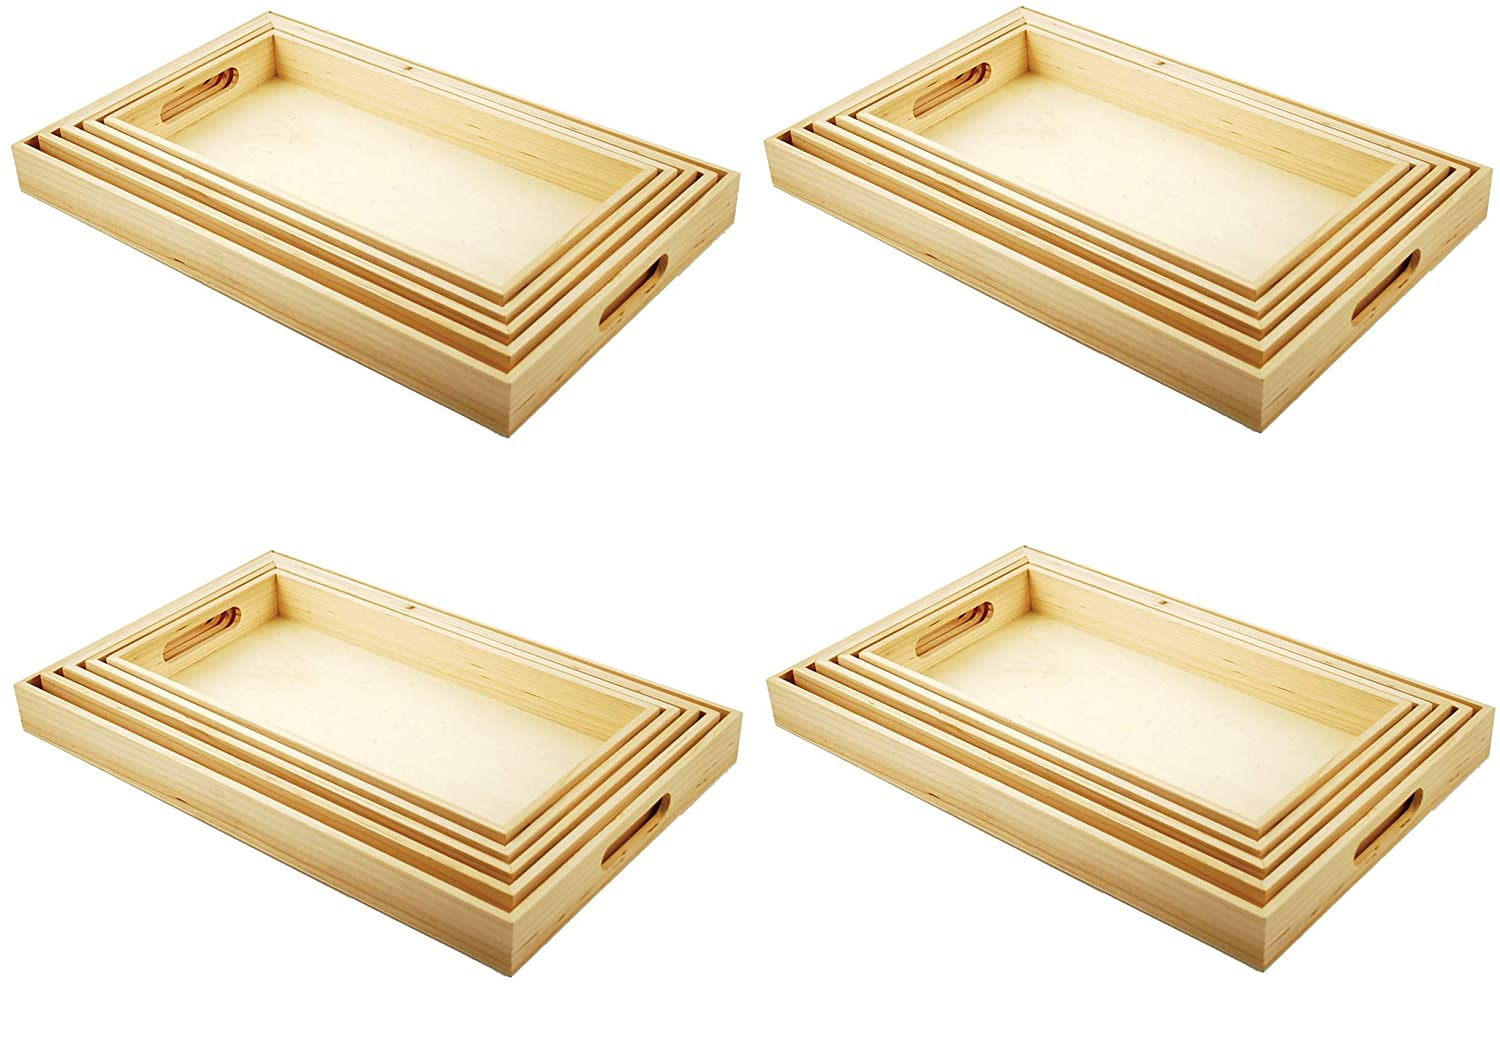 6-5//8 by 13-Inch to 10-1//8 by 16-1//8-Inch Multicraft Imports WS410 5-Piece Paintable Wooden Trays with Handles